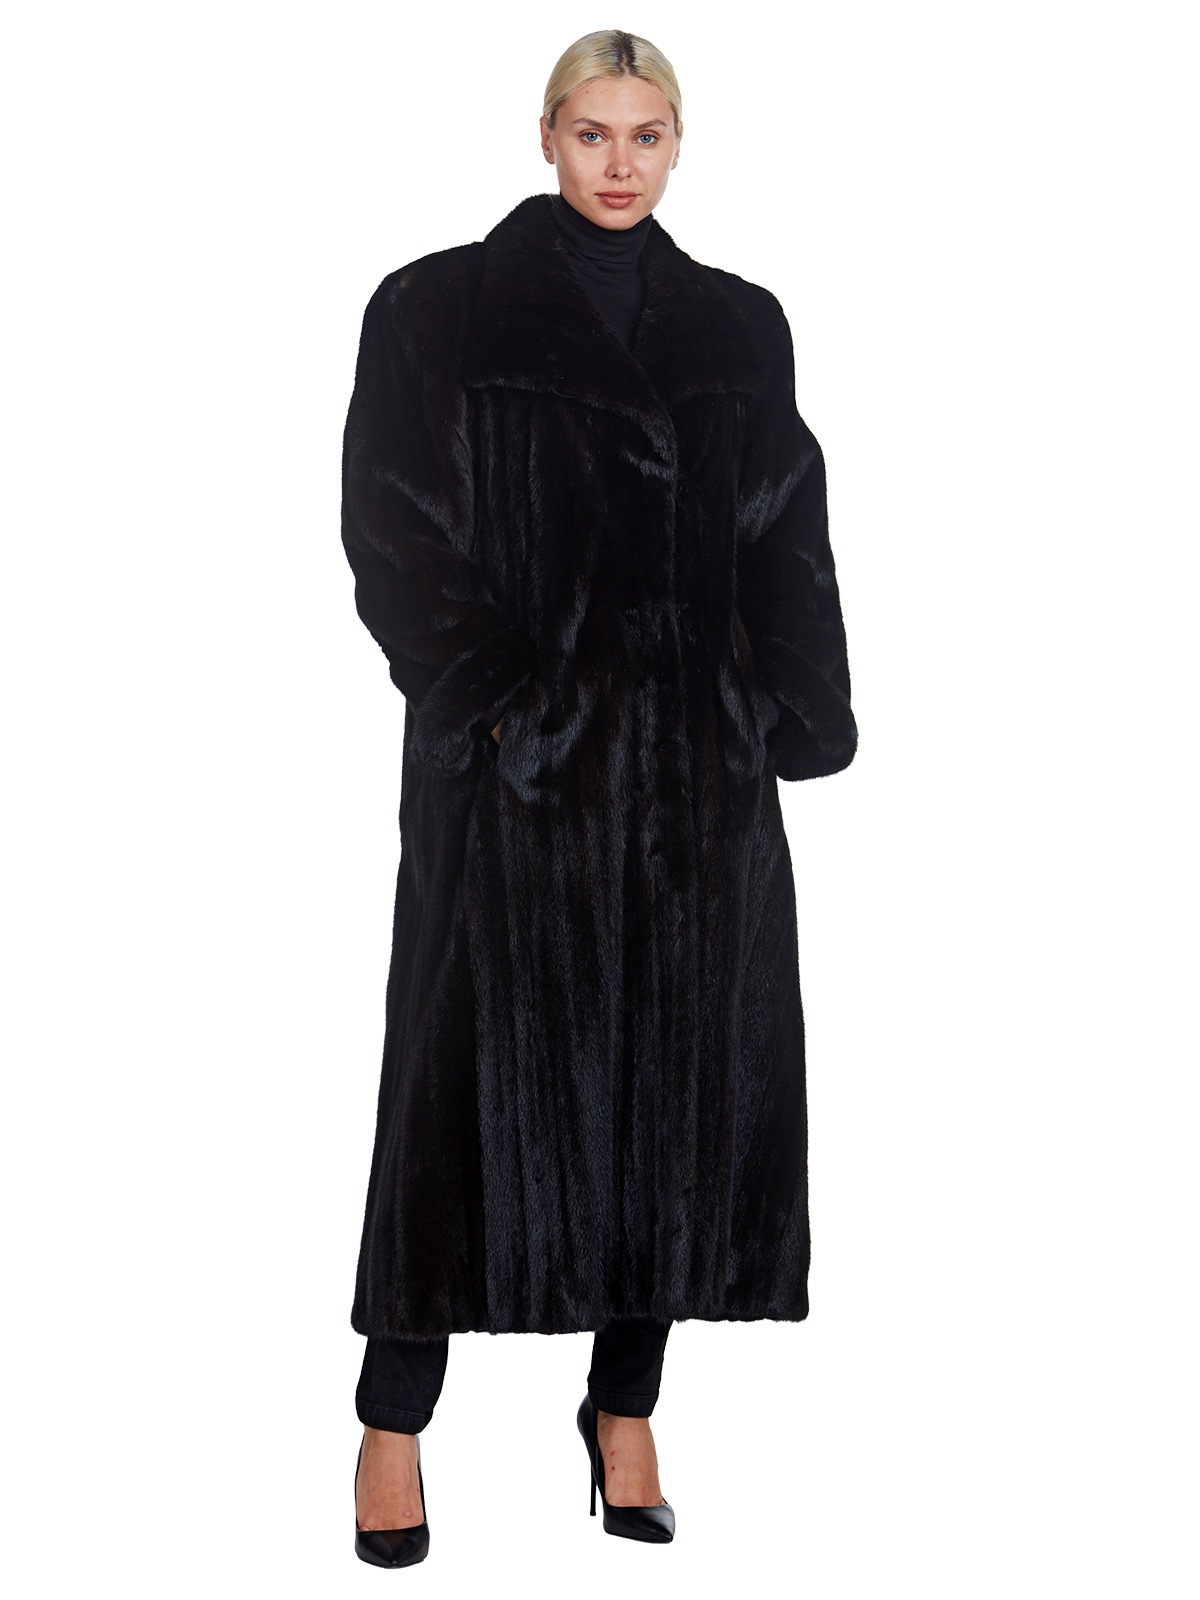 Woman's Full Length Ranch Mink Fur Coat with Wing Collar